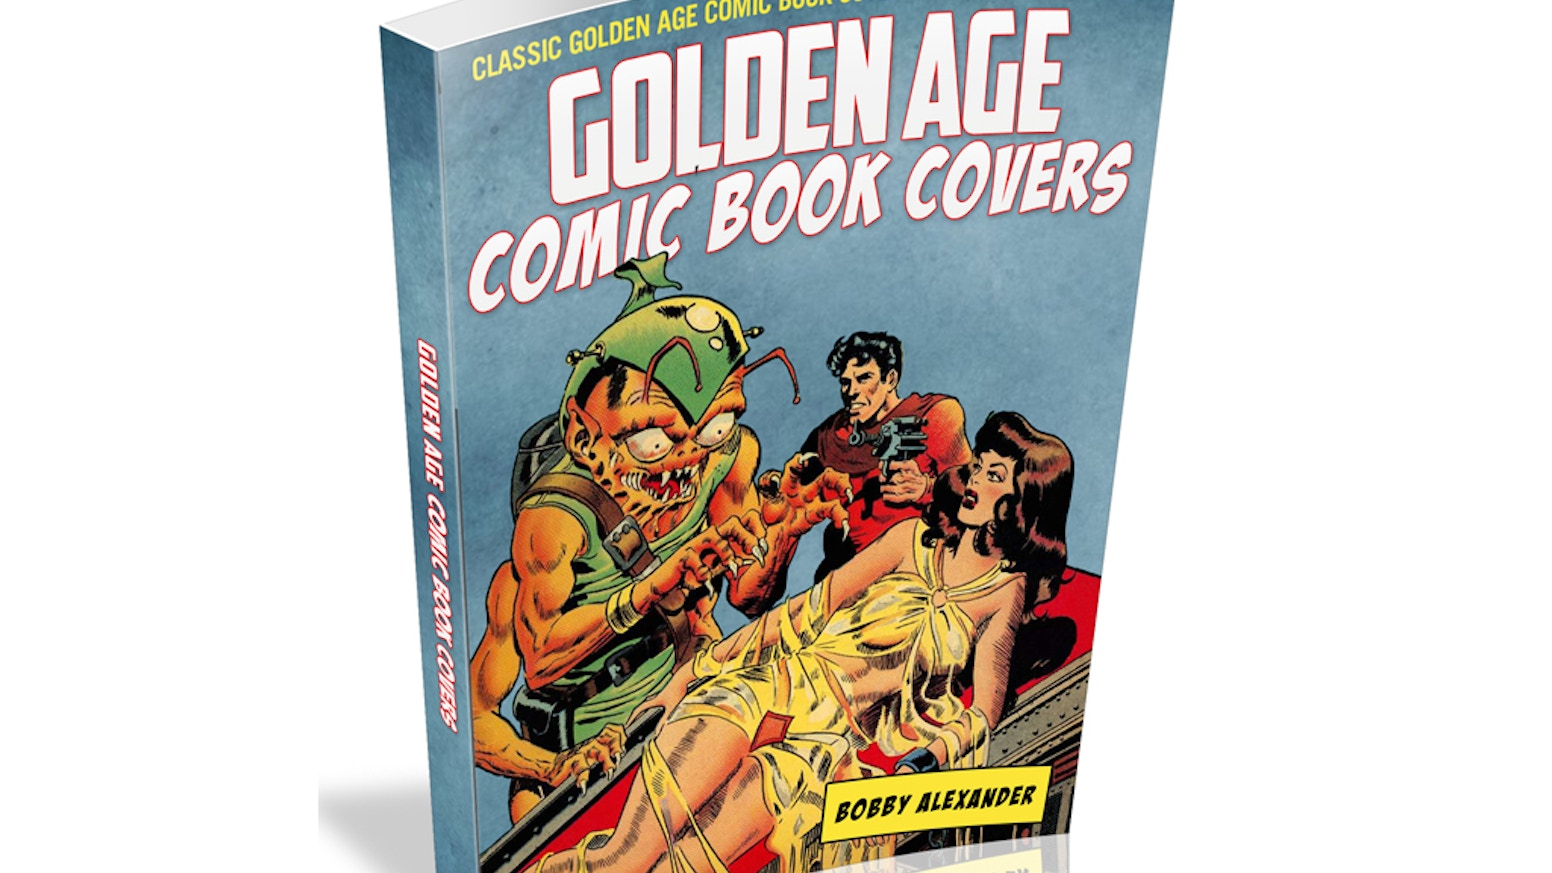 Comic Book Cover Paper : Golden age comic book covers by bobby alexander —kickstarter